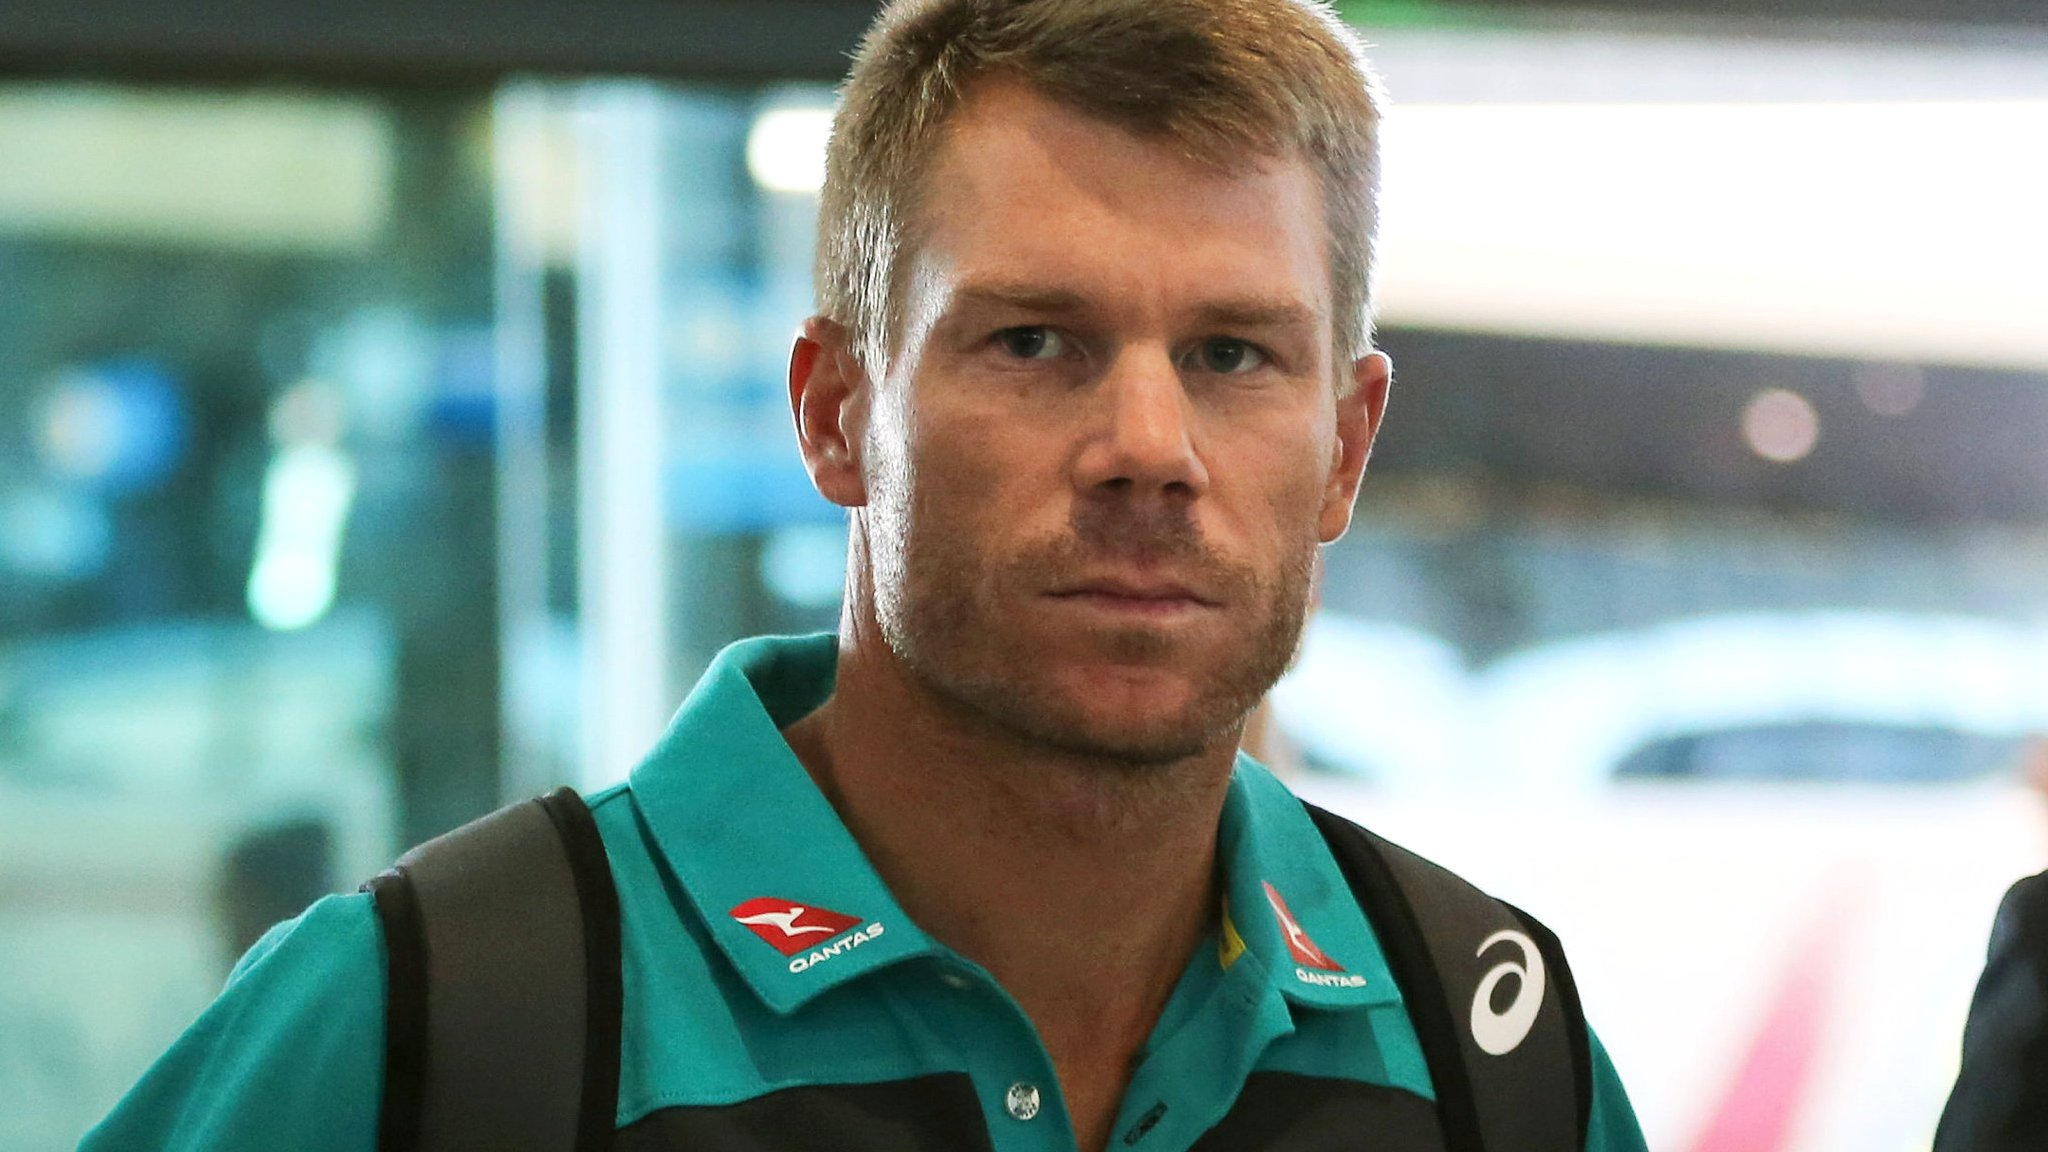 Warner to play for St Lucia in Caribbean Premier League T20